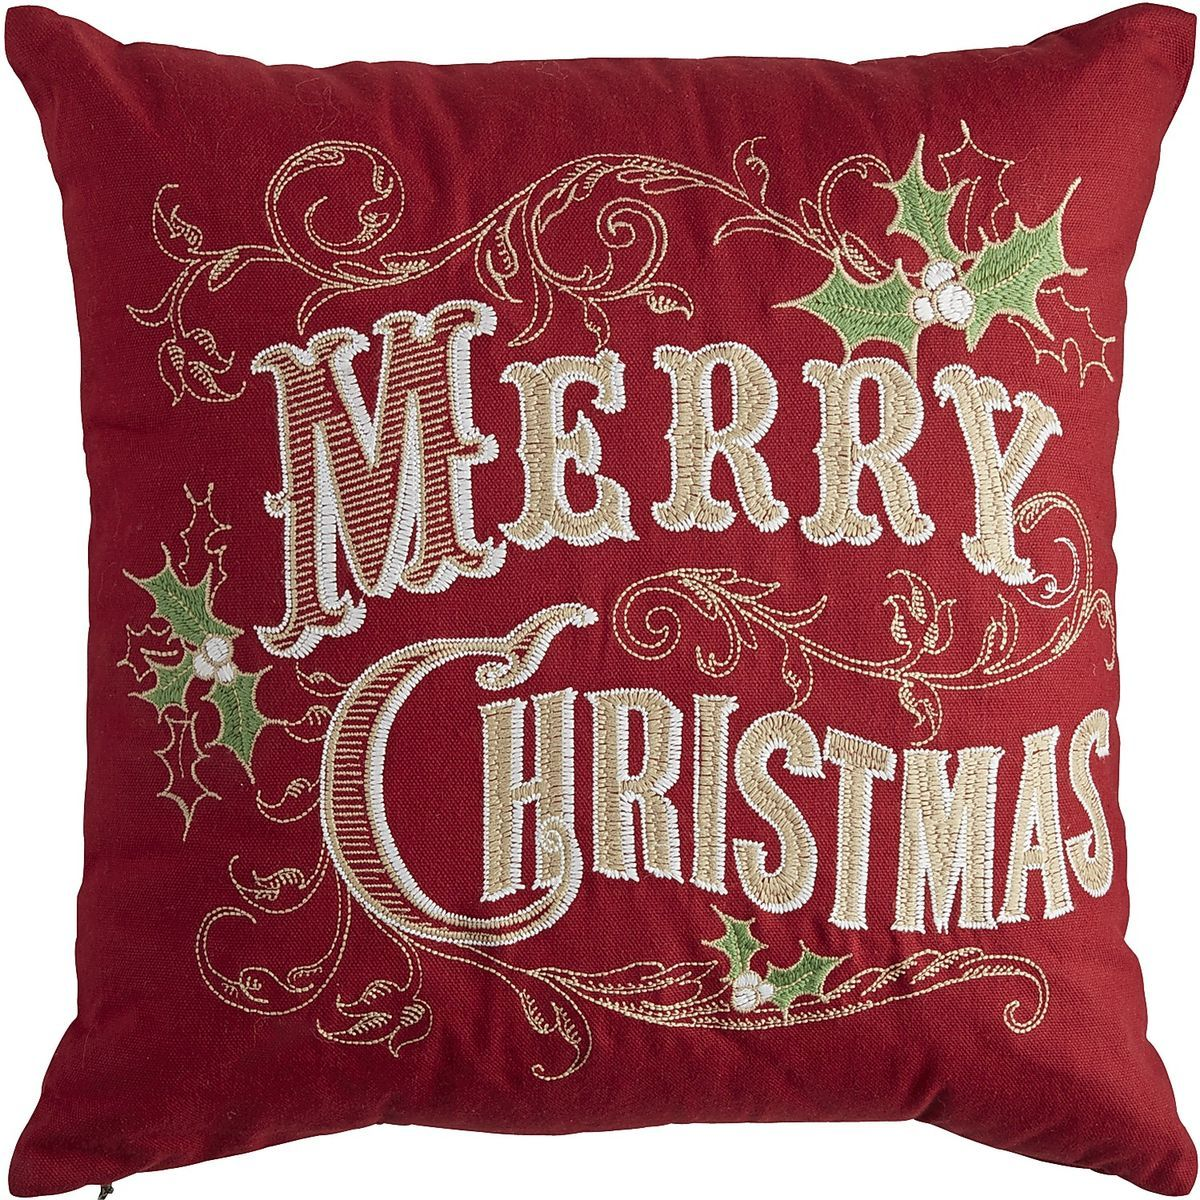 Merry Christmas Pillow - Red Pier 1 Imports christmas colors 2016 Pinterest Christmas ...